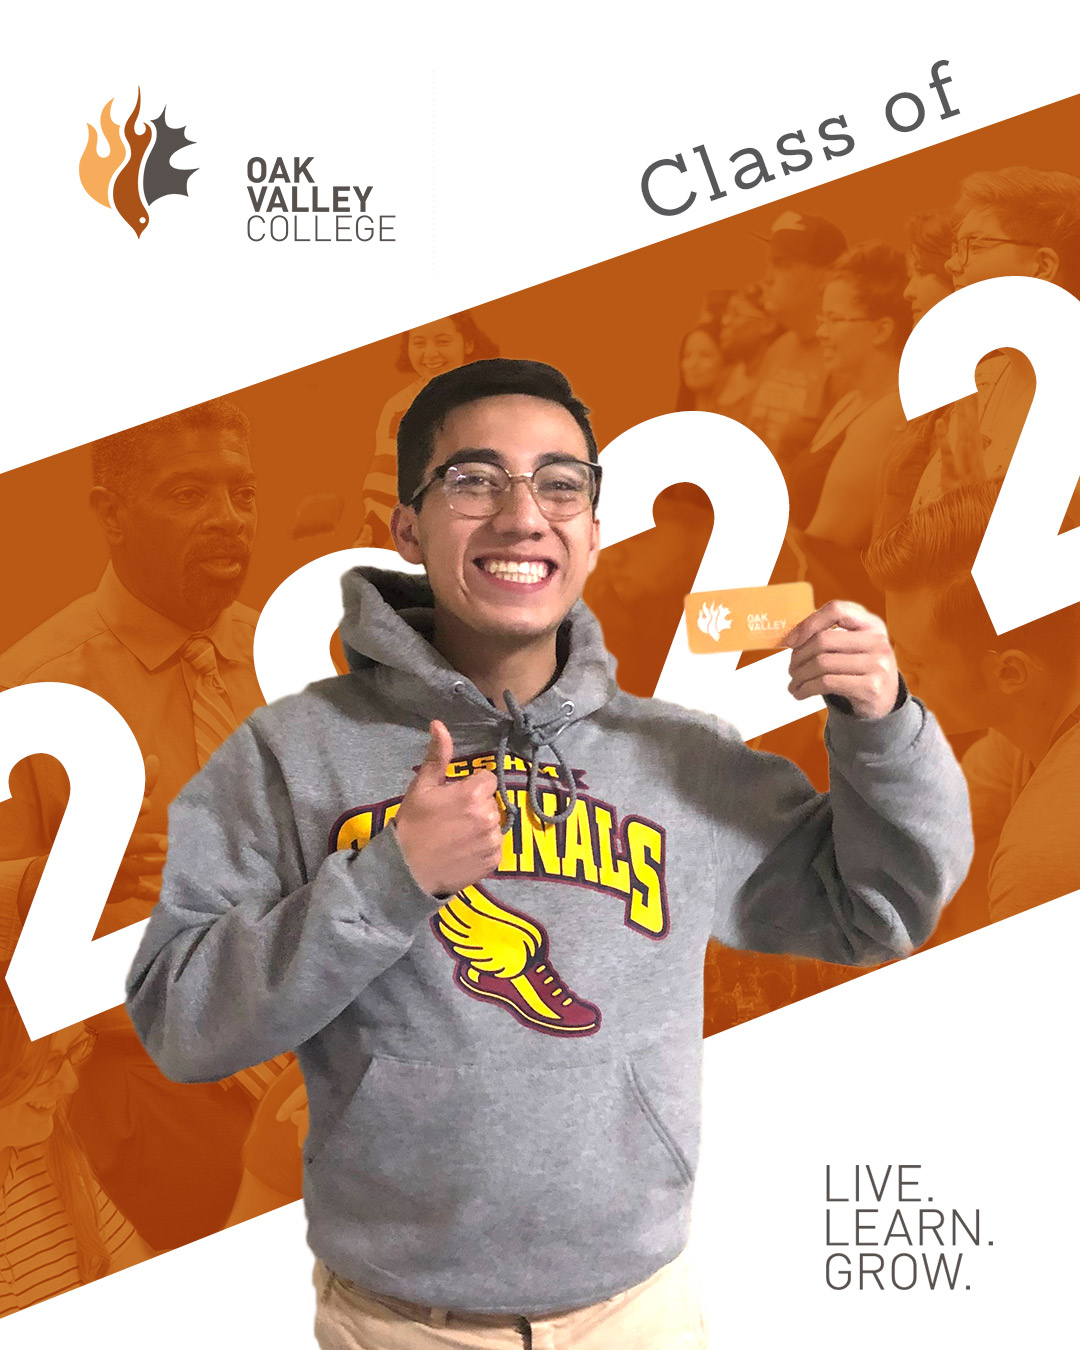 Marco is one of 32 incoming freshman who will make up Oak Valley's class of 2022.